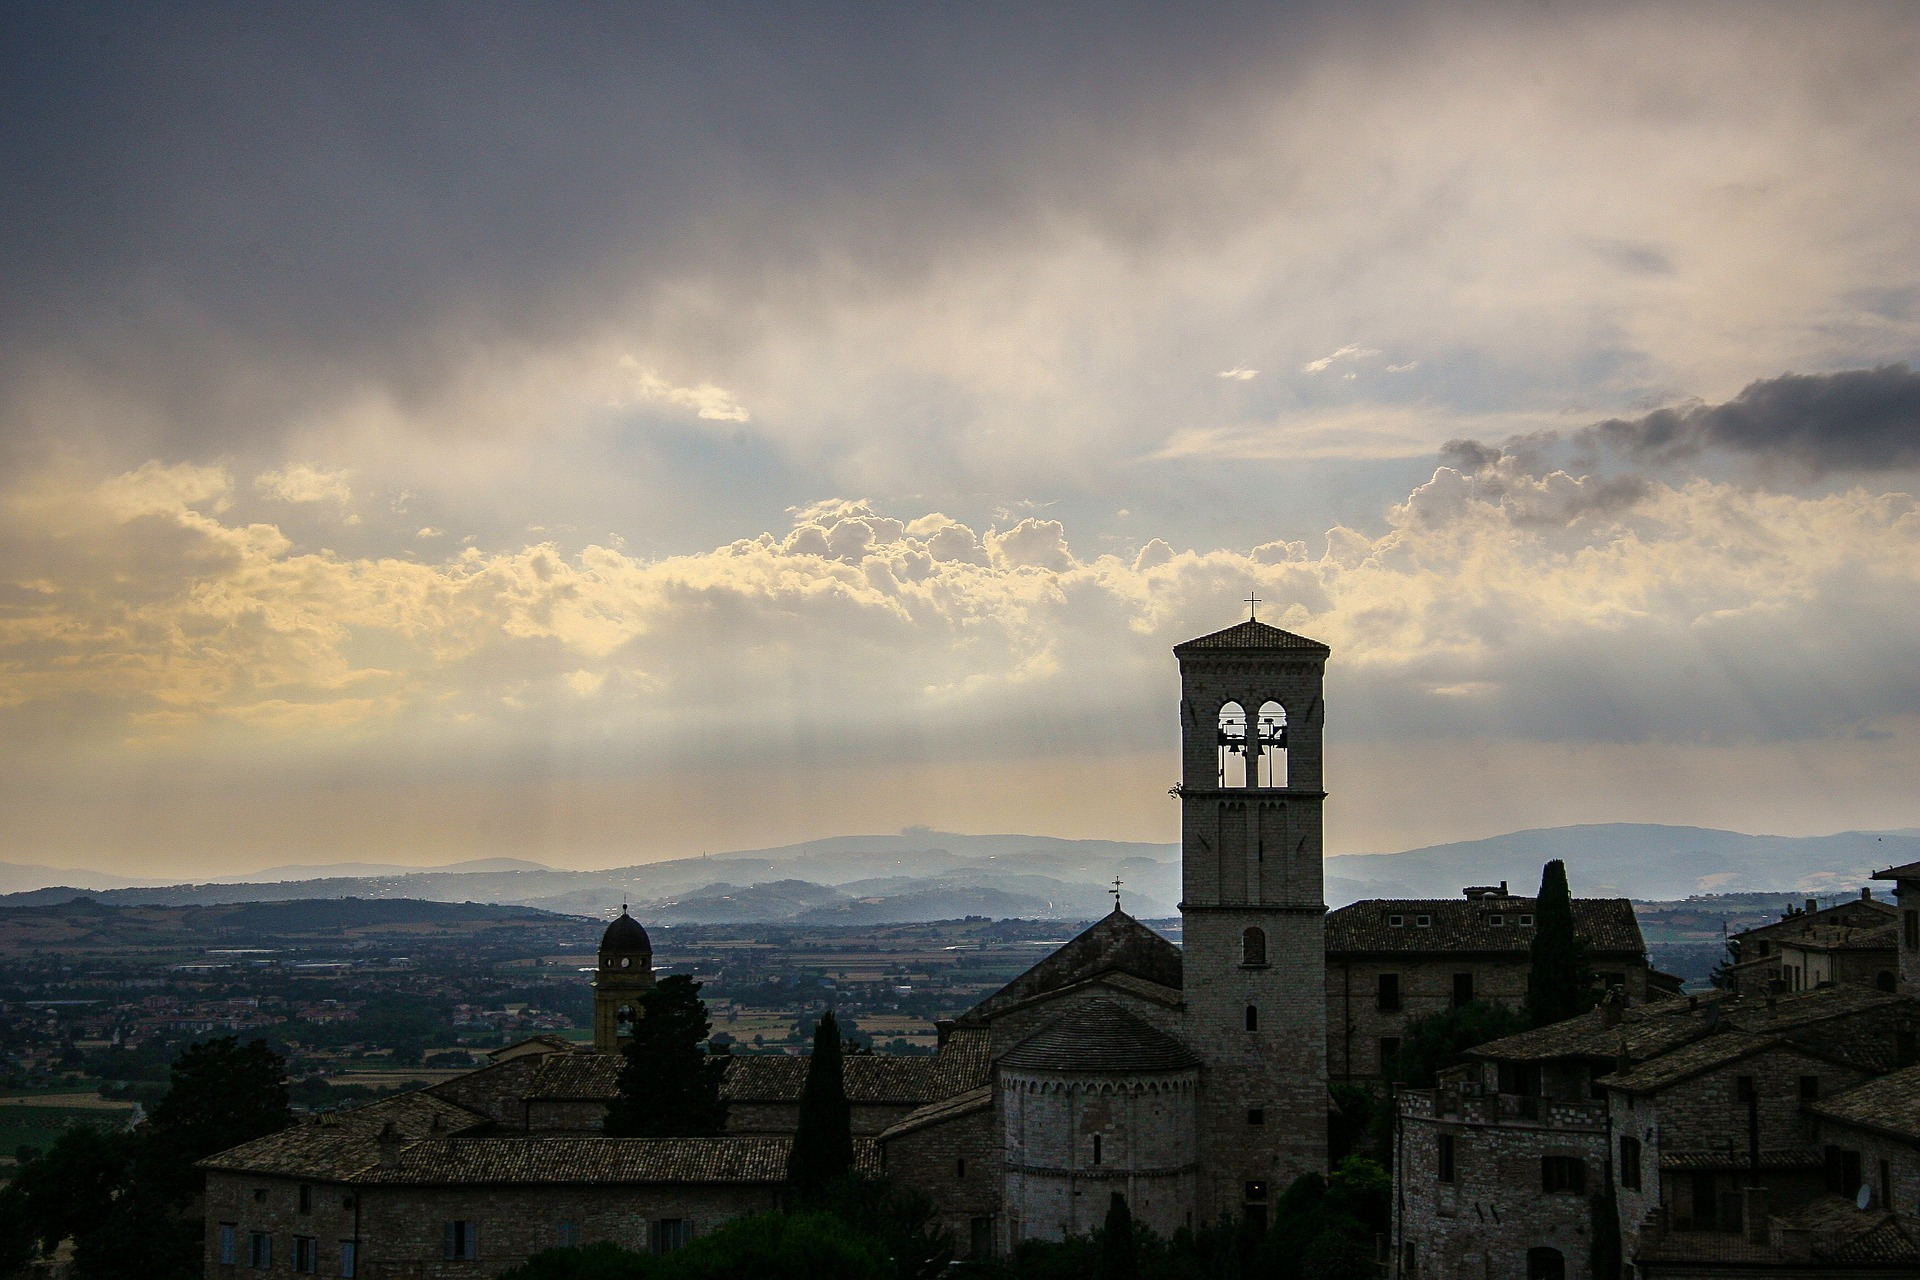 View of Assisi on a cloudy day